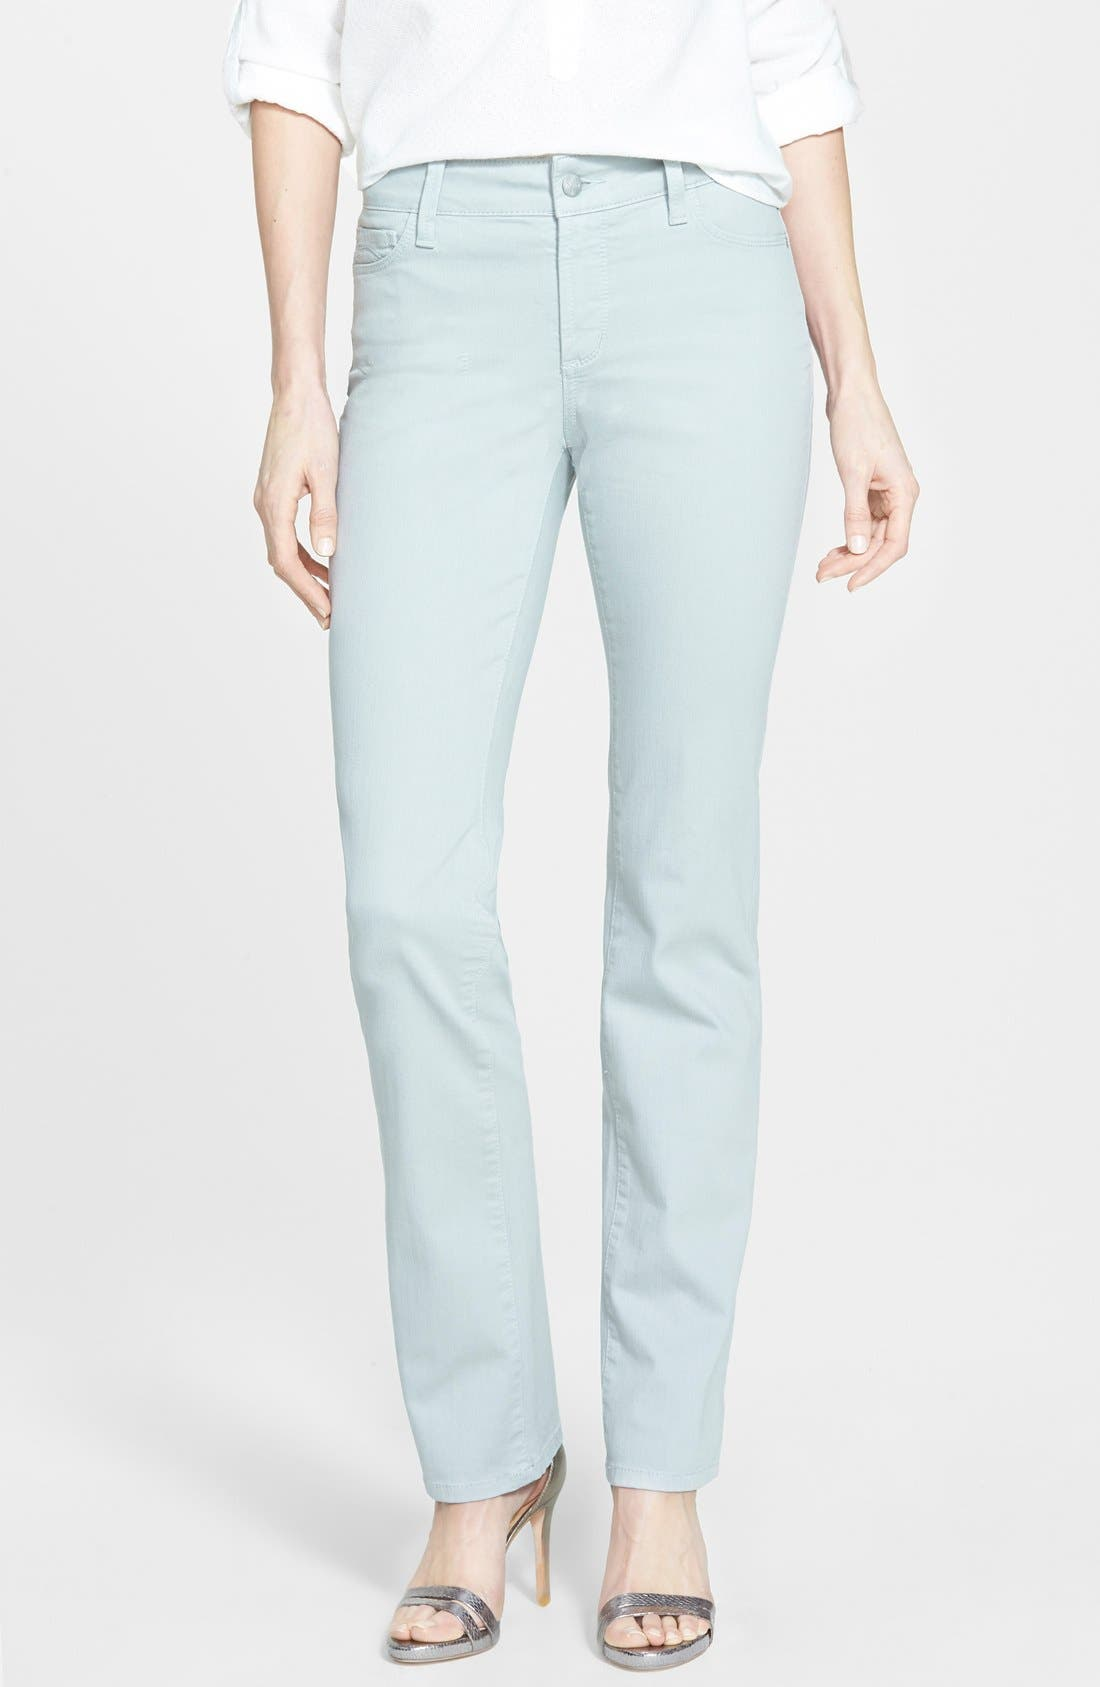 'Marilyn' Stretch Straight Leg Jeans,                             Main thumbnail 1, color,                             020